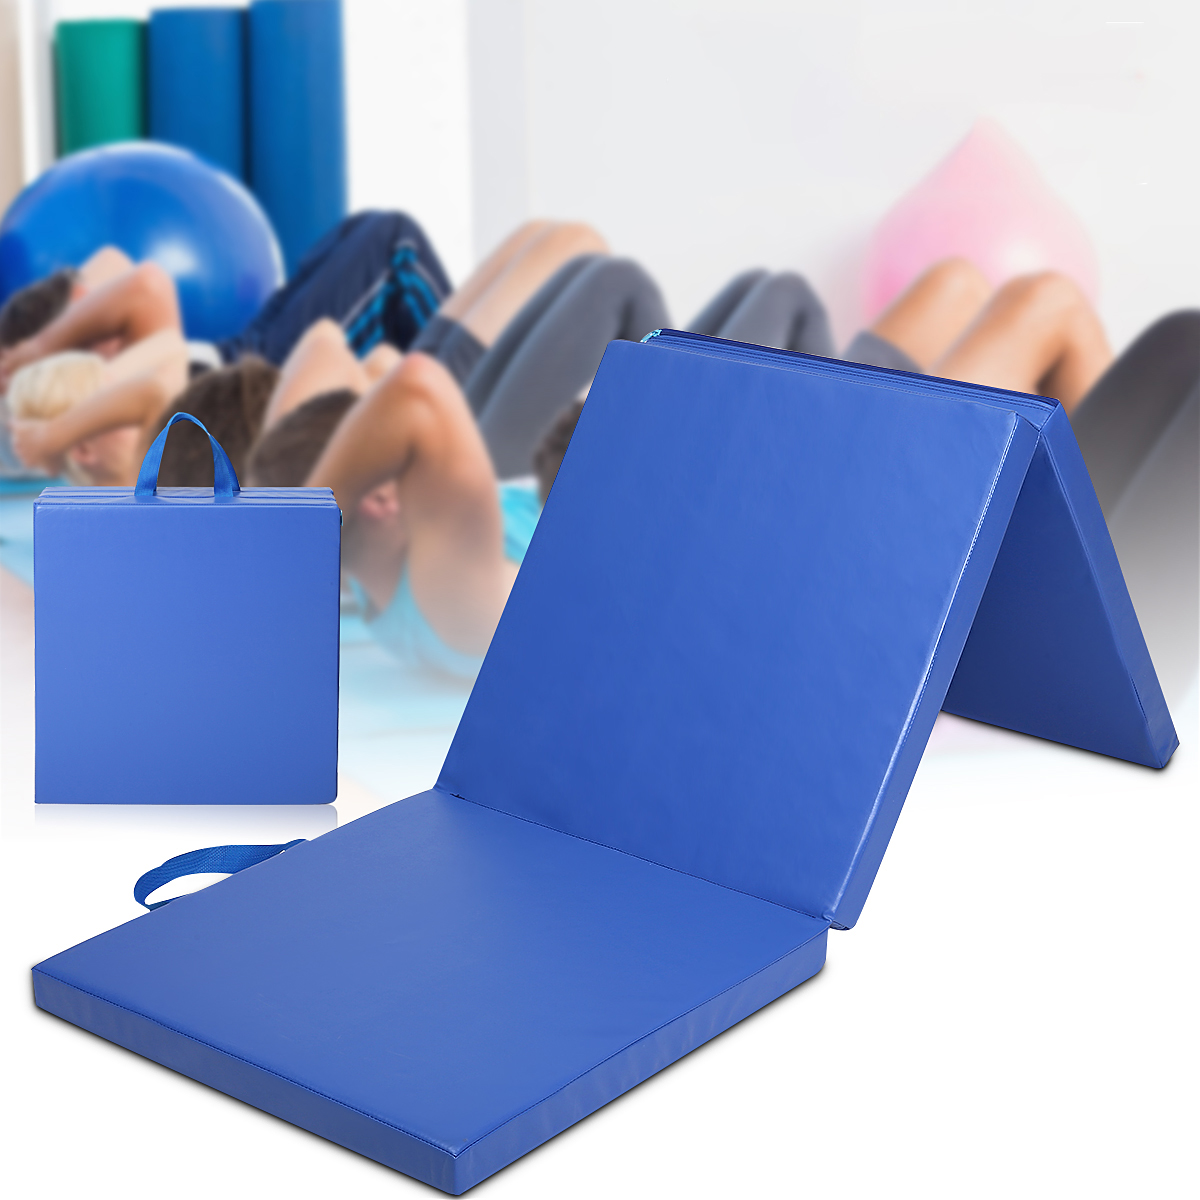 70232inch 3 Folds Gymnastics Mat Yoga Exercise Gym Portable Airtrack Panel Tumbling Climbing Pilates Pad Cushion